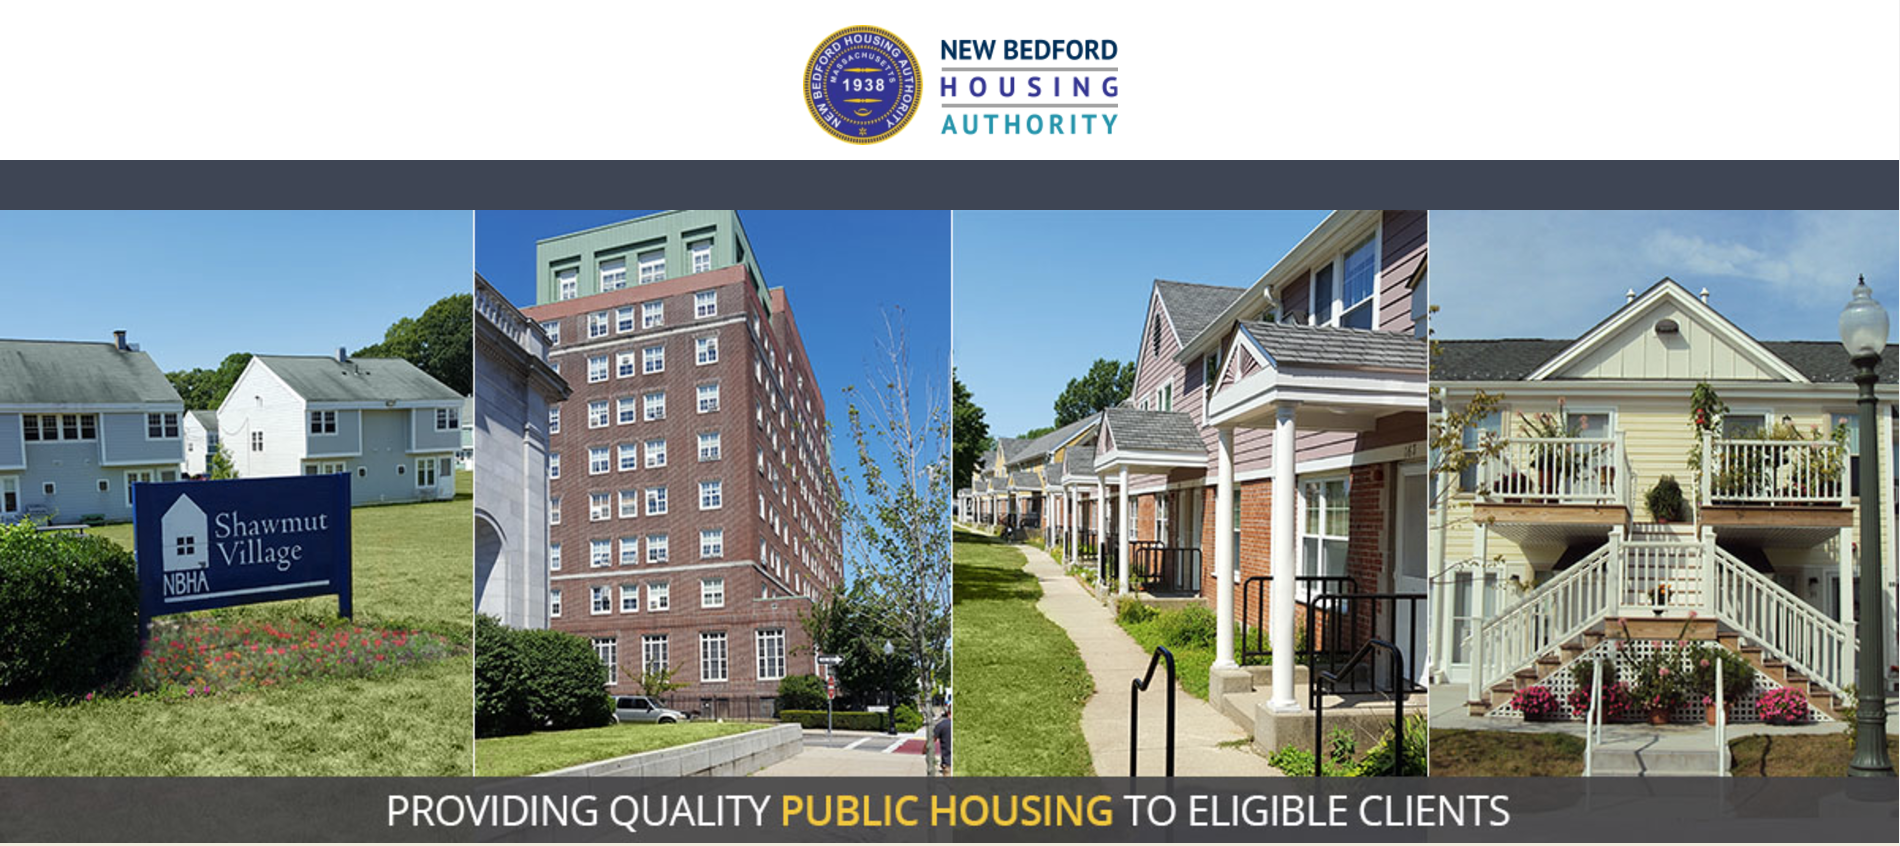 new Bedford housing.PNG